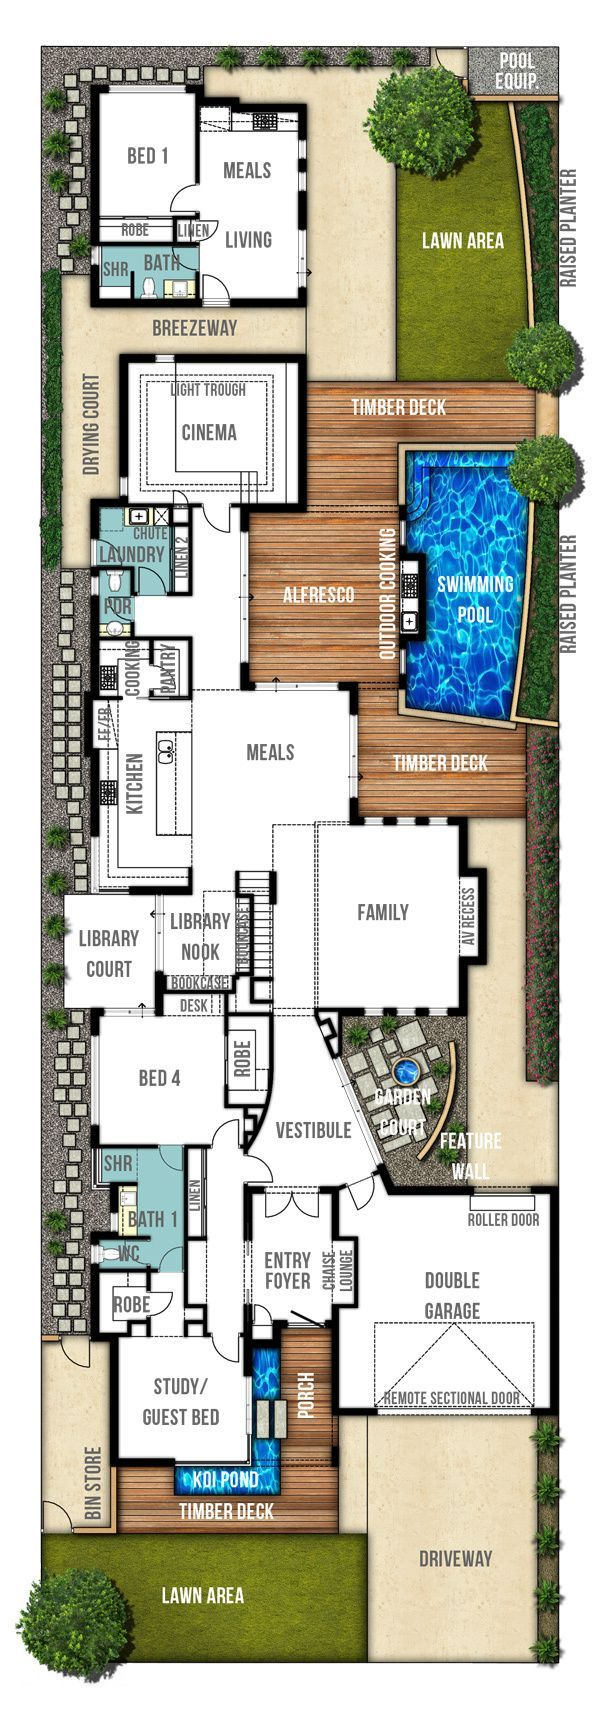 Best 25+ Home plans ideas on Pinterest | House plans, House floor ...